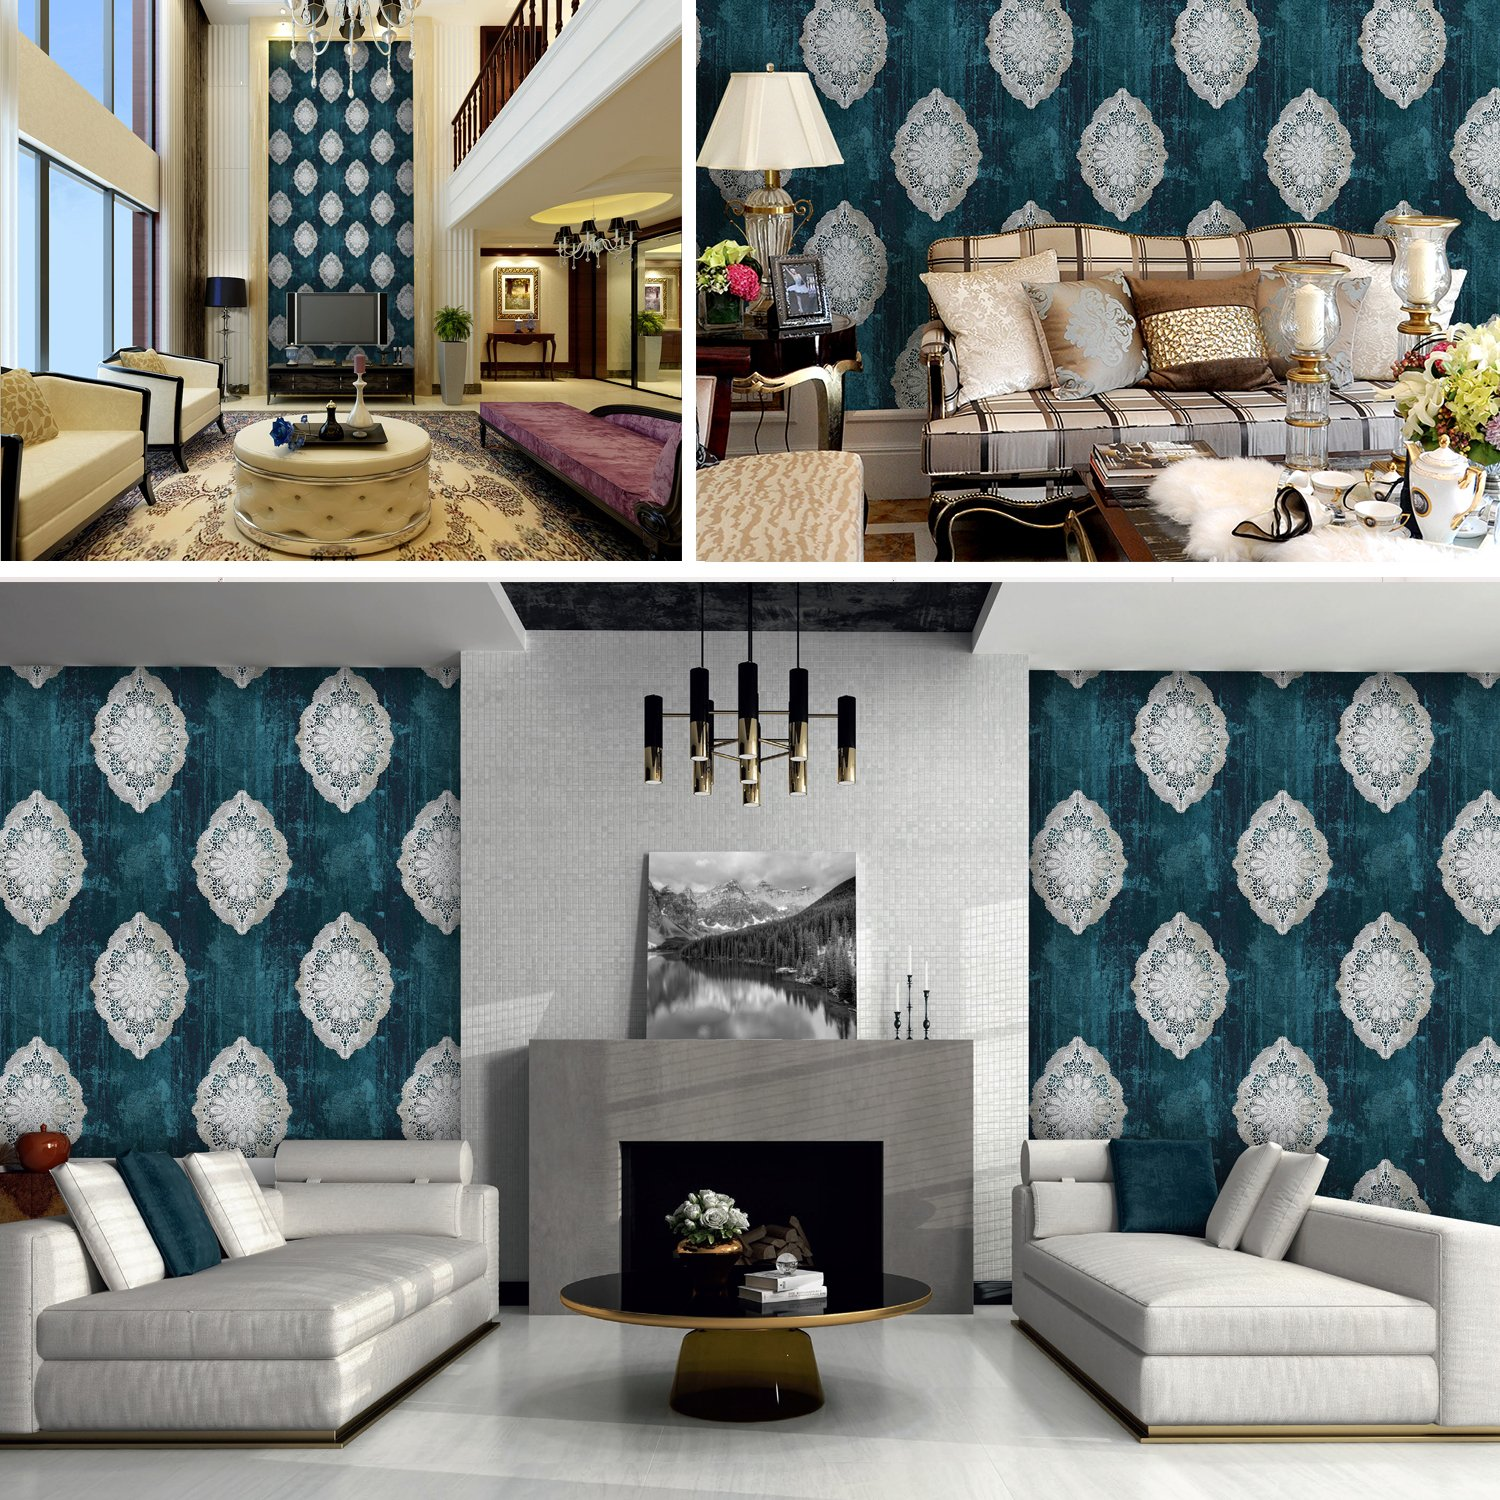 JZ127 Luxury Blue Damask Wallpaper Rolls, Metal Lace Texture Embossed Vinyl Wallpaper Bedroom Living Room Hotel Wall Decoration 20.8'' x 393.7'' by JZHOME (Image #3)